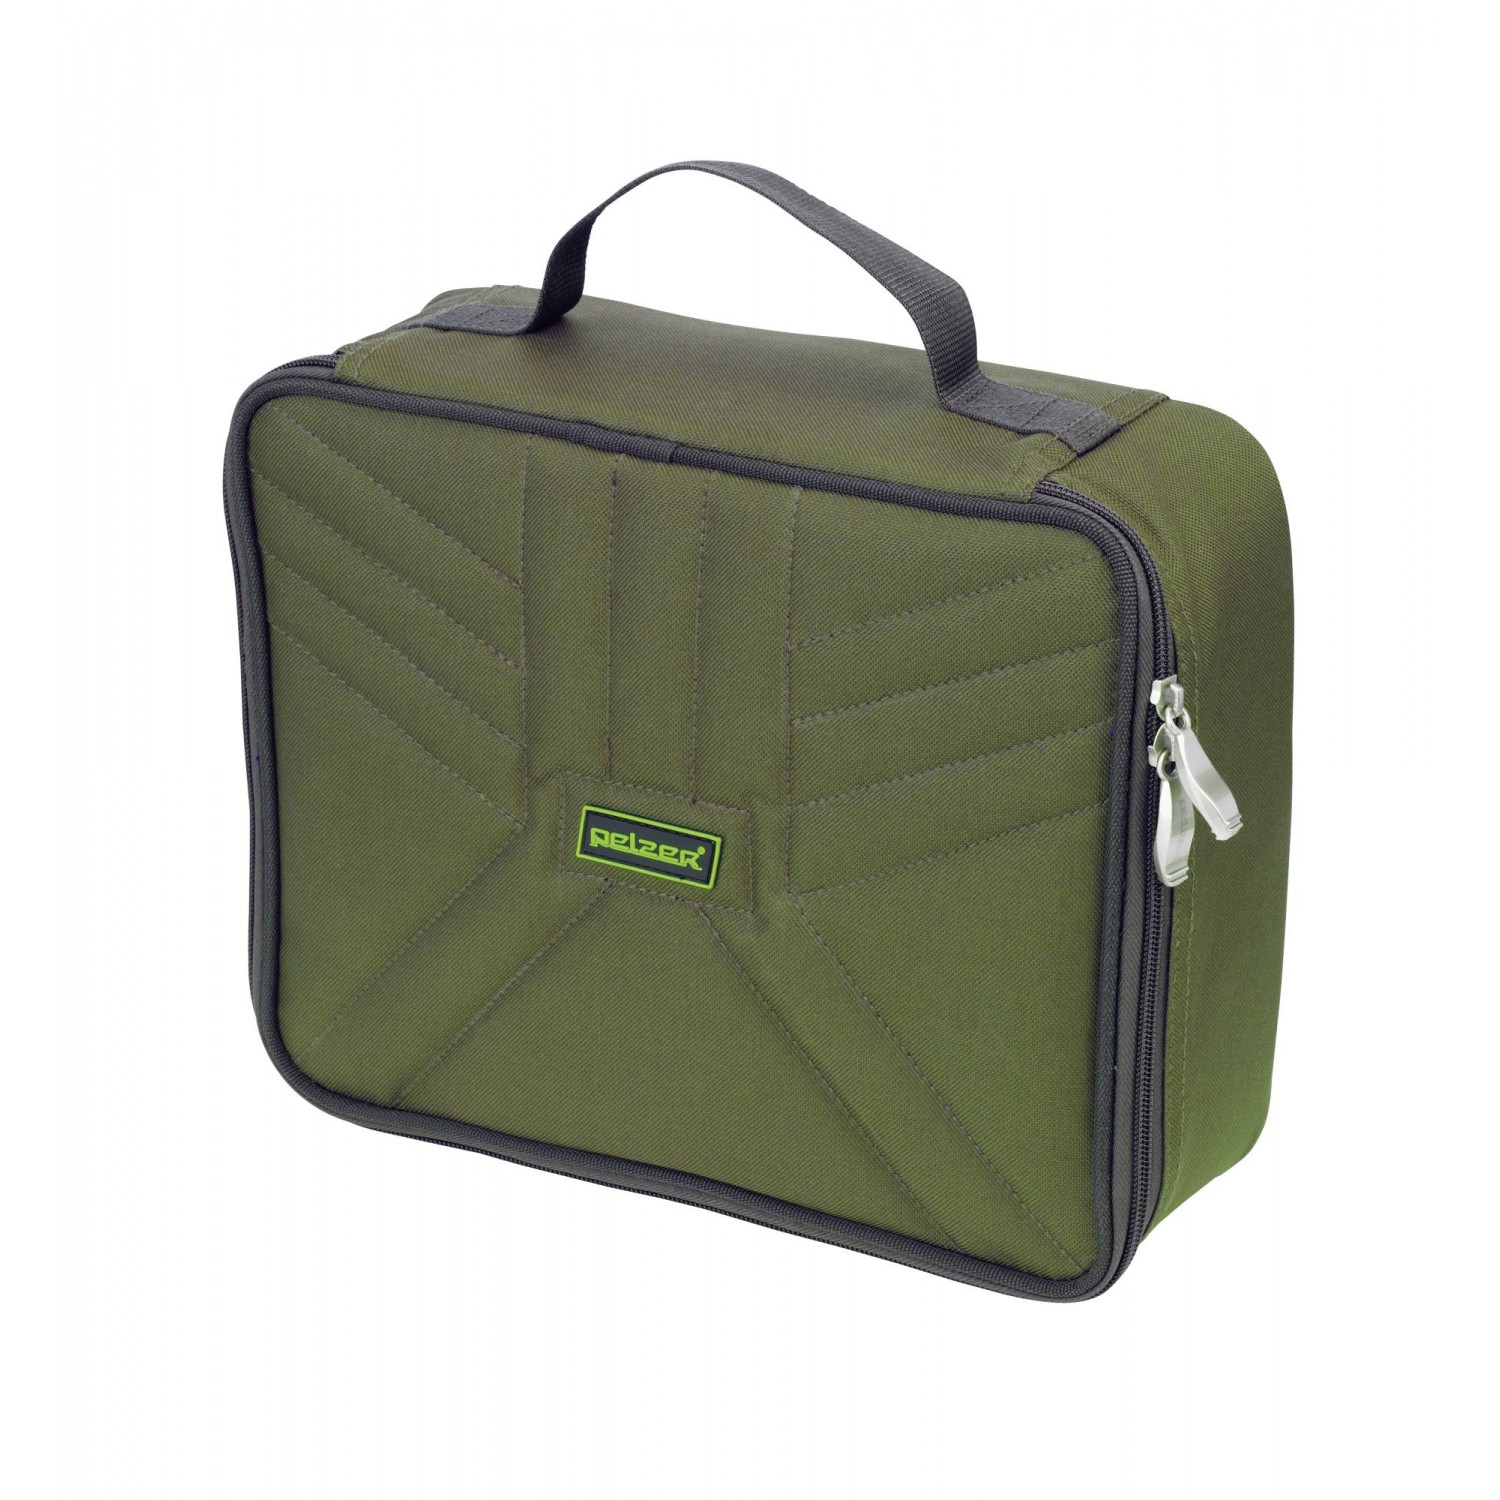 Pelzer Executive Lead & Tackle Box, 30 x 25 x 11cm